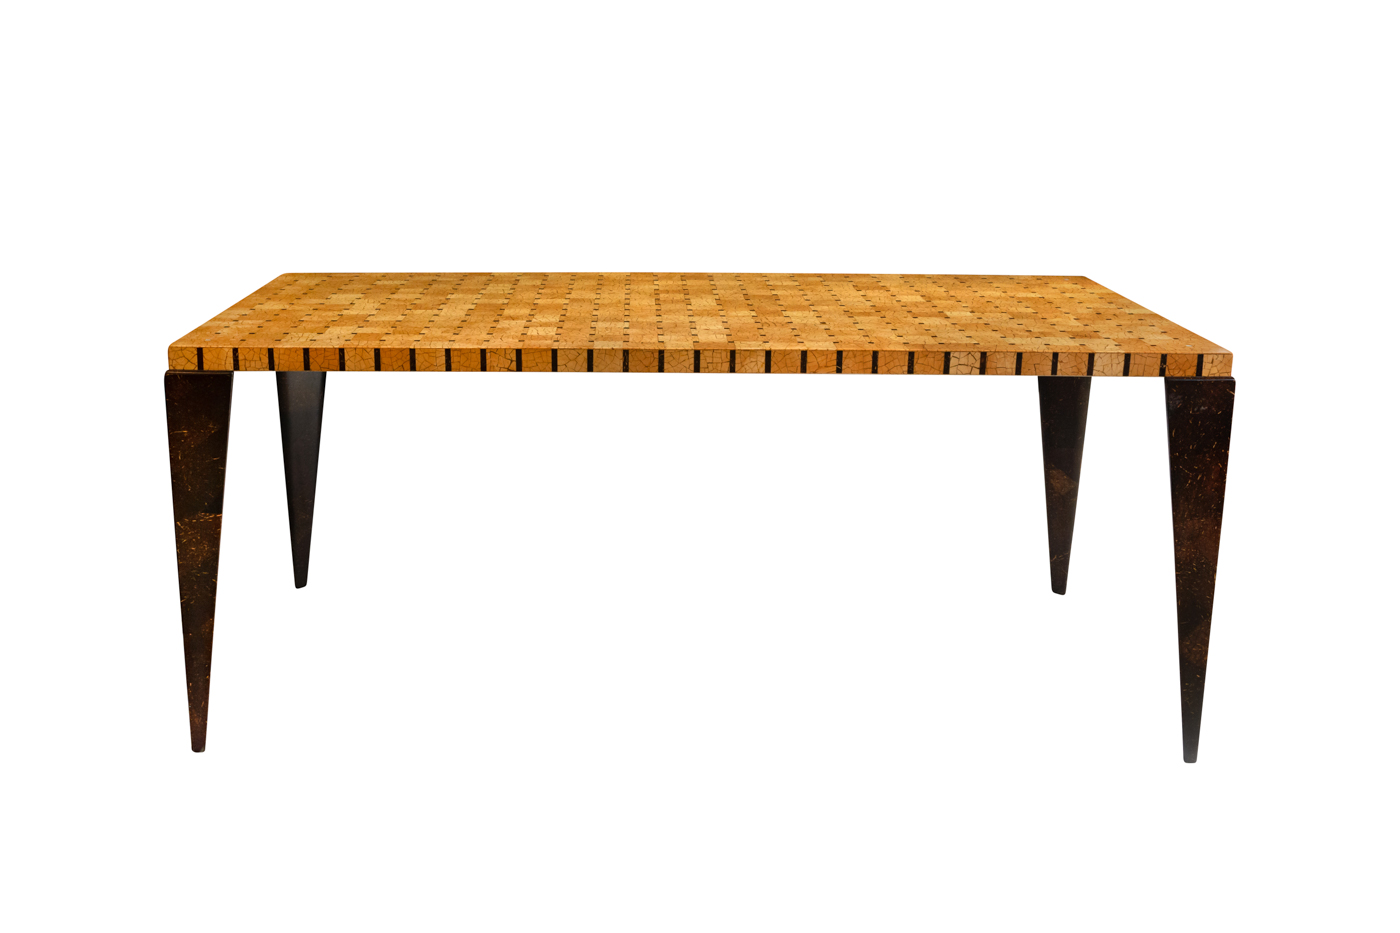 Dining table Bea in coconut bark